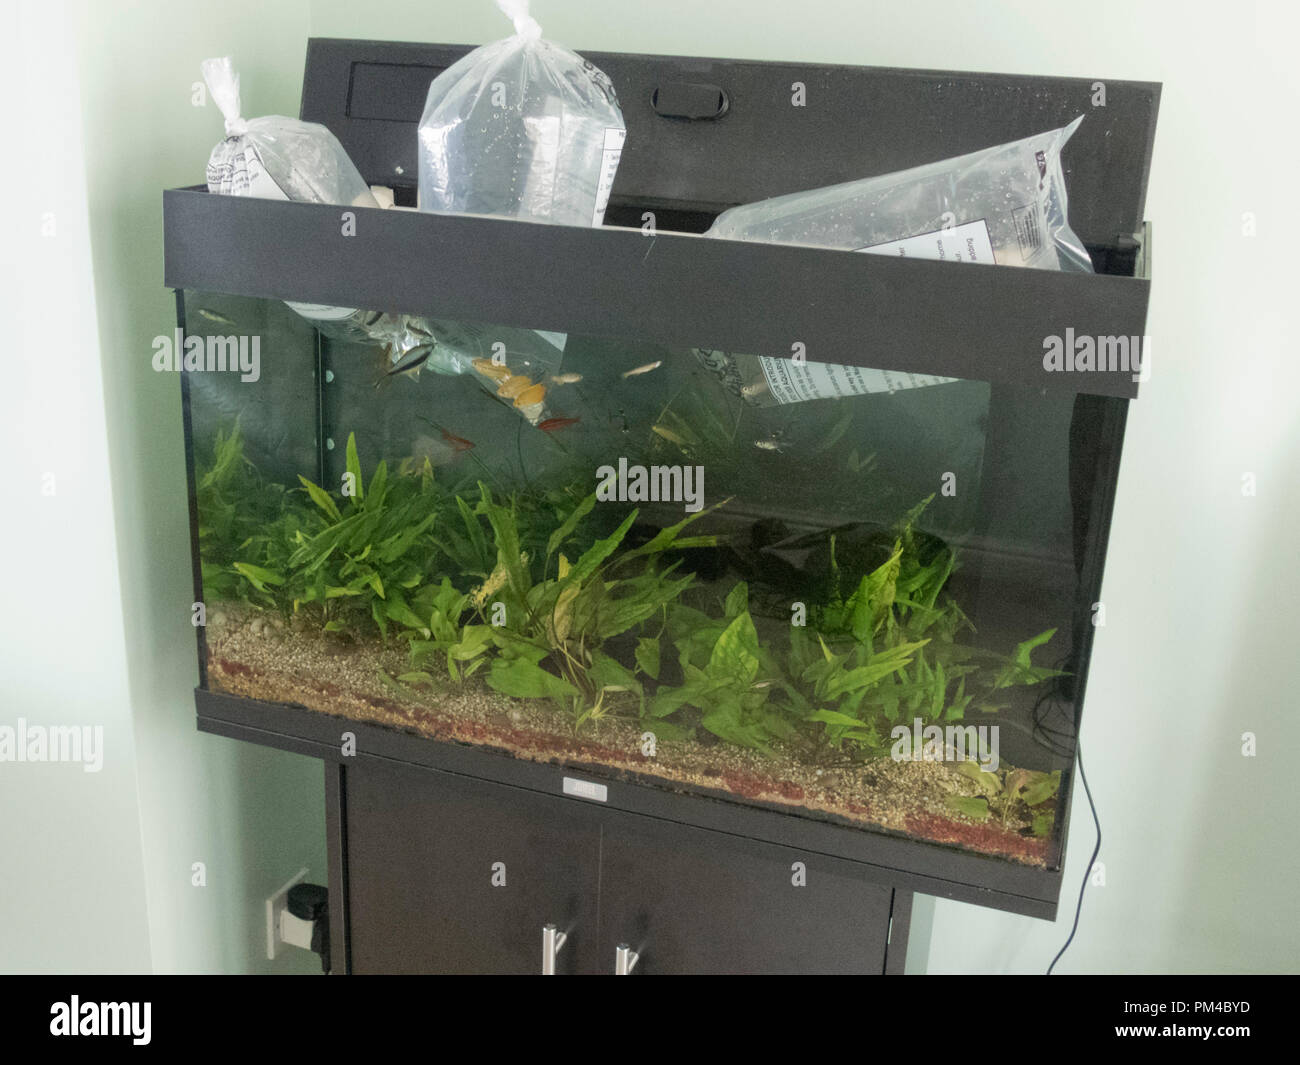 Tropical Freshwater Fish Being Introduced Into a Aquarium - Stock Image